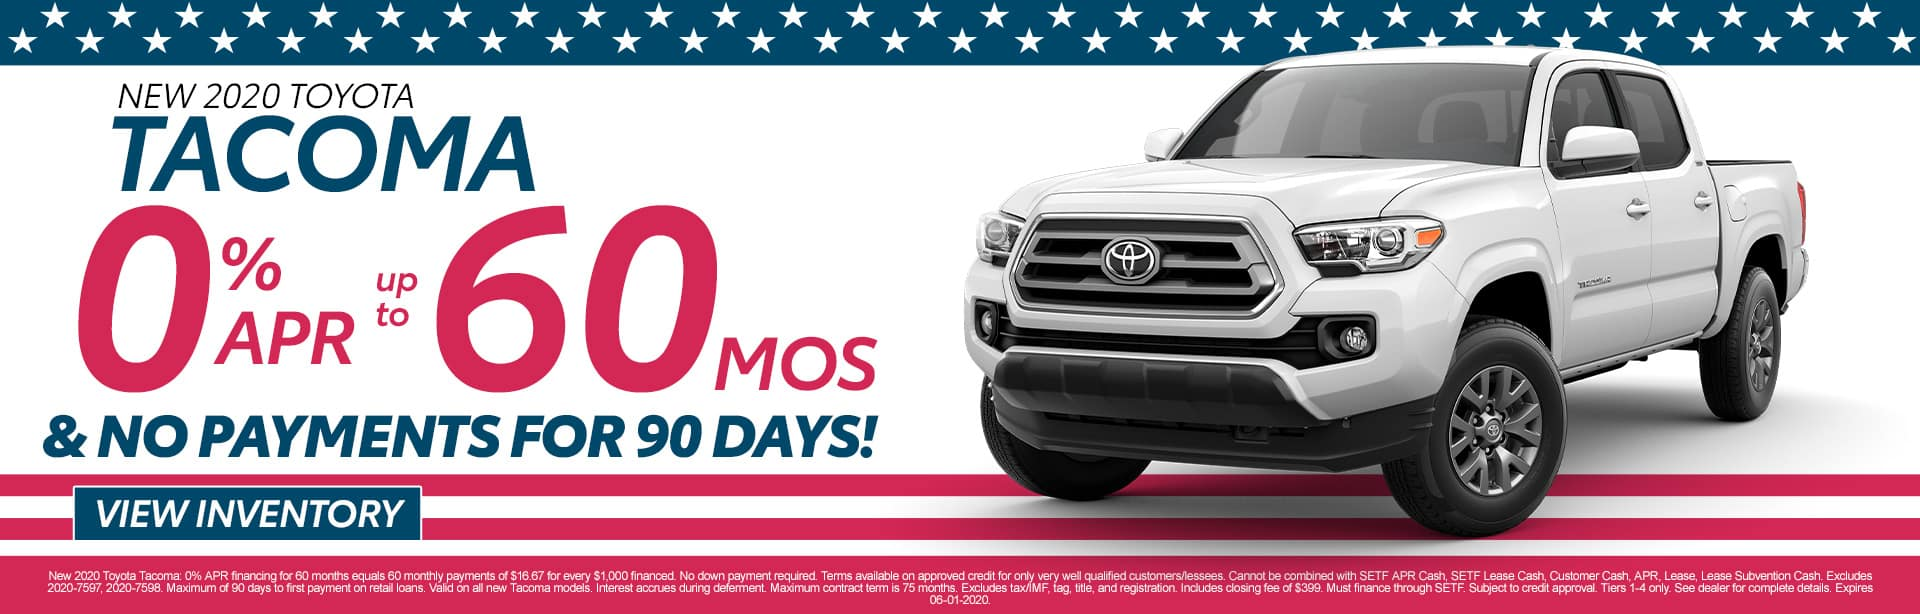 2020 Toyota Tacoma | 0% APR for 60 Months